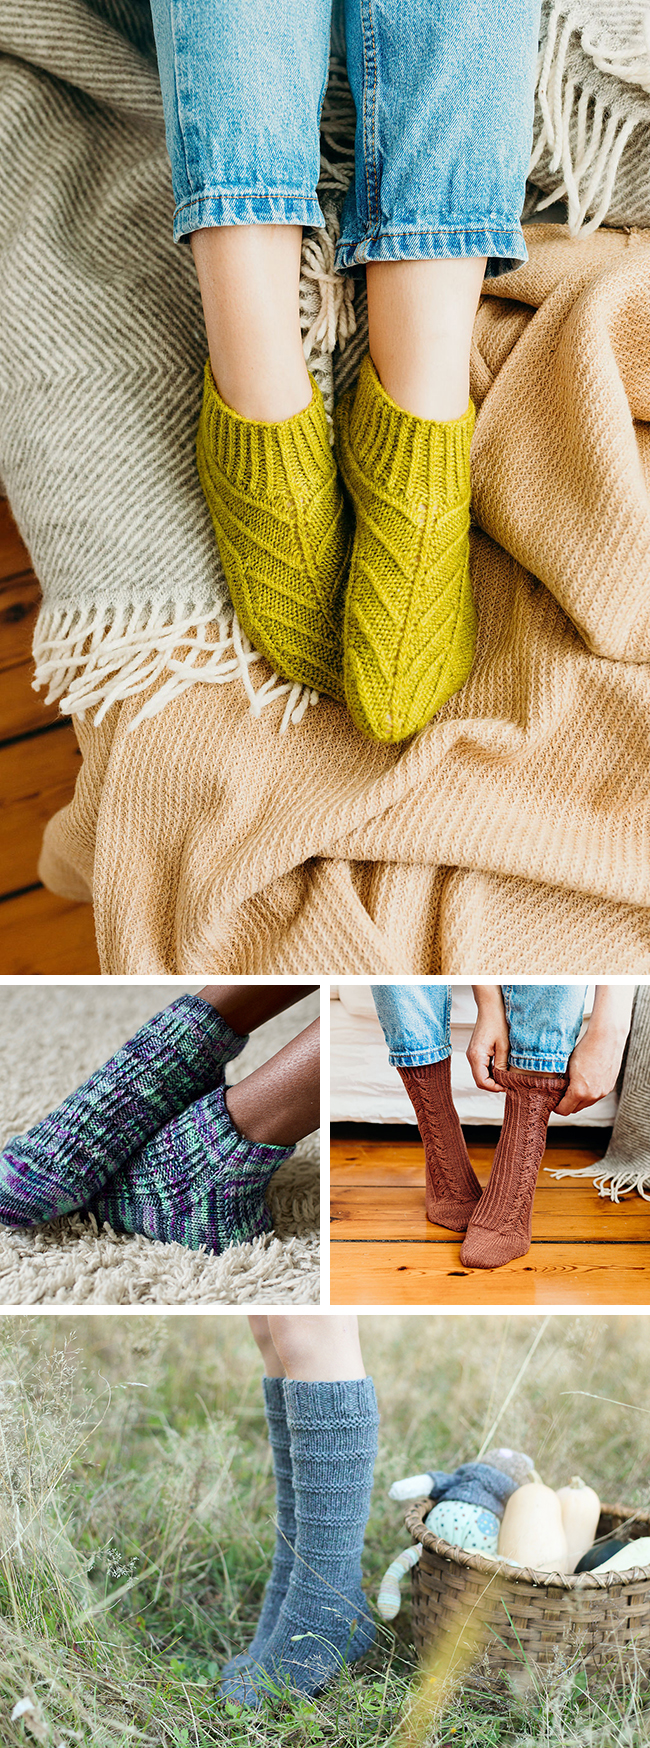 New Favorites: Serious sock temptations